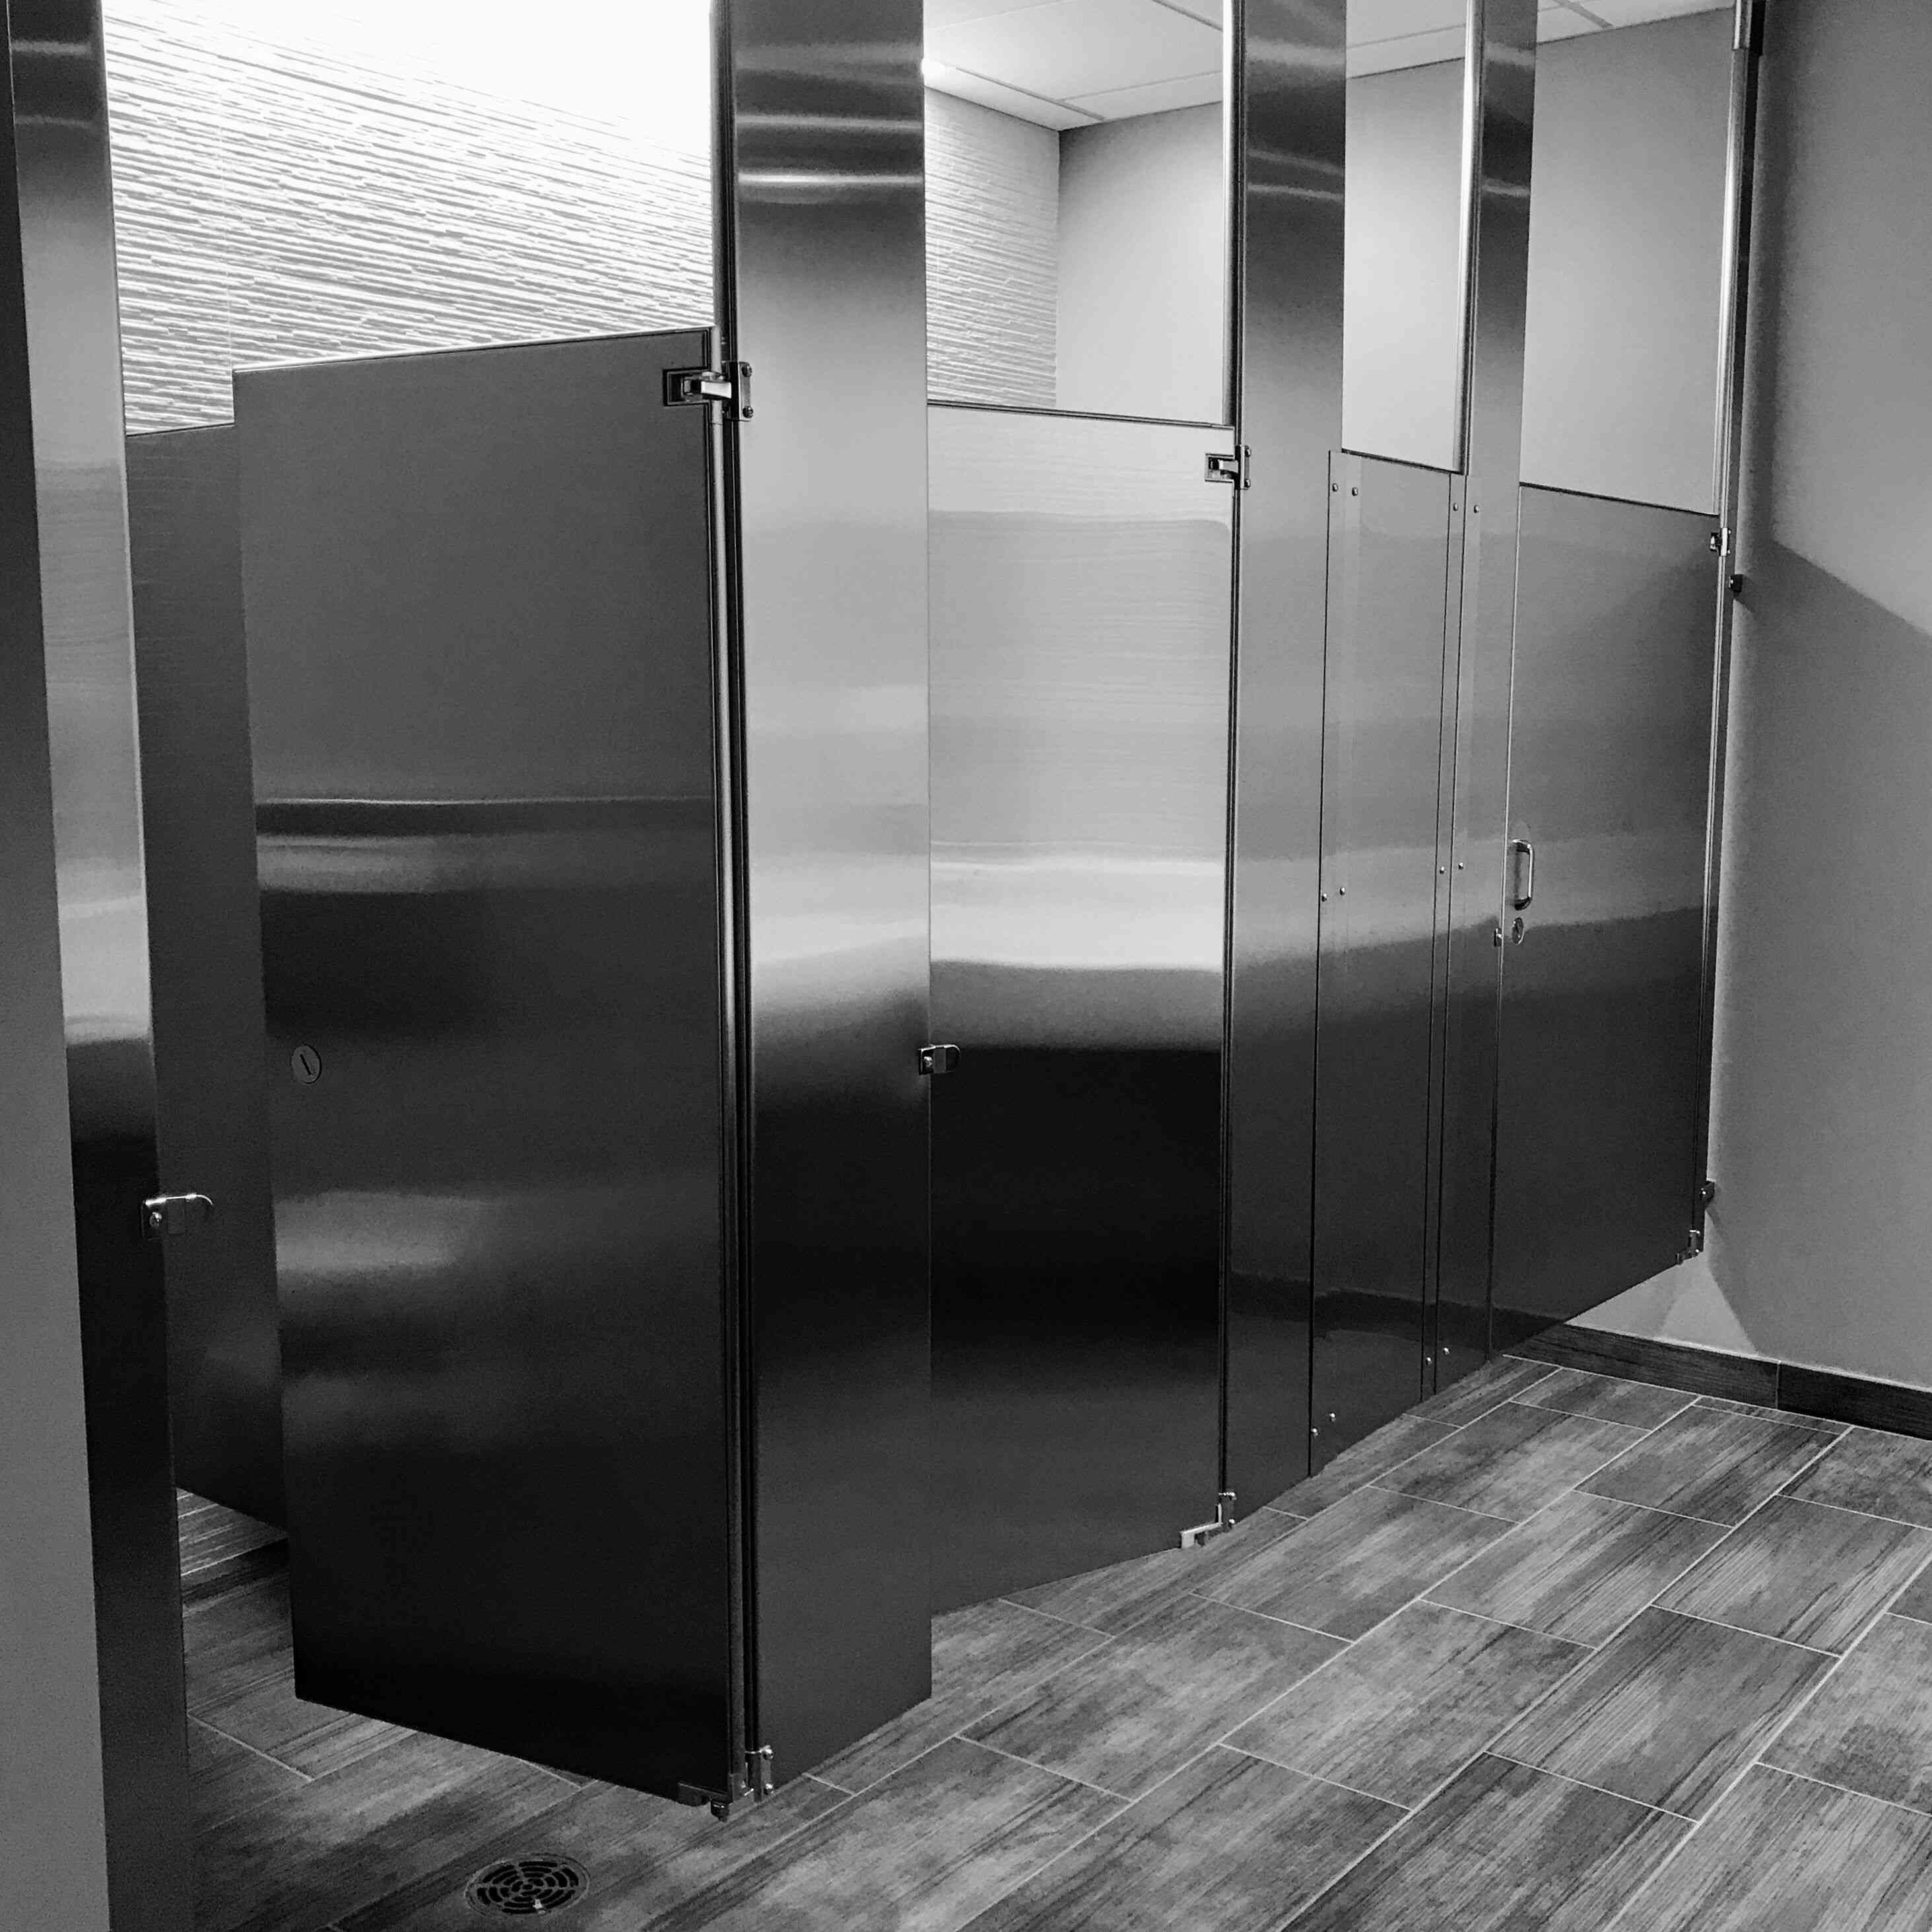 Interior of bathroom with metal stall partitions.